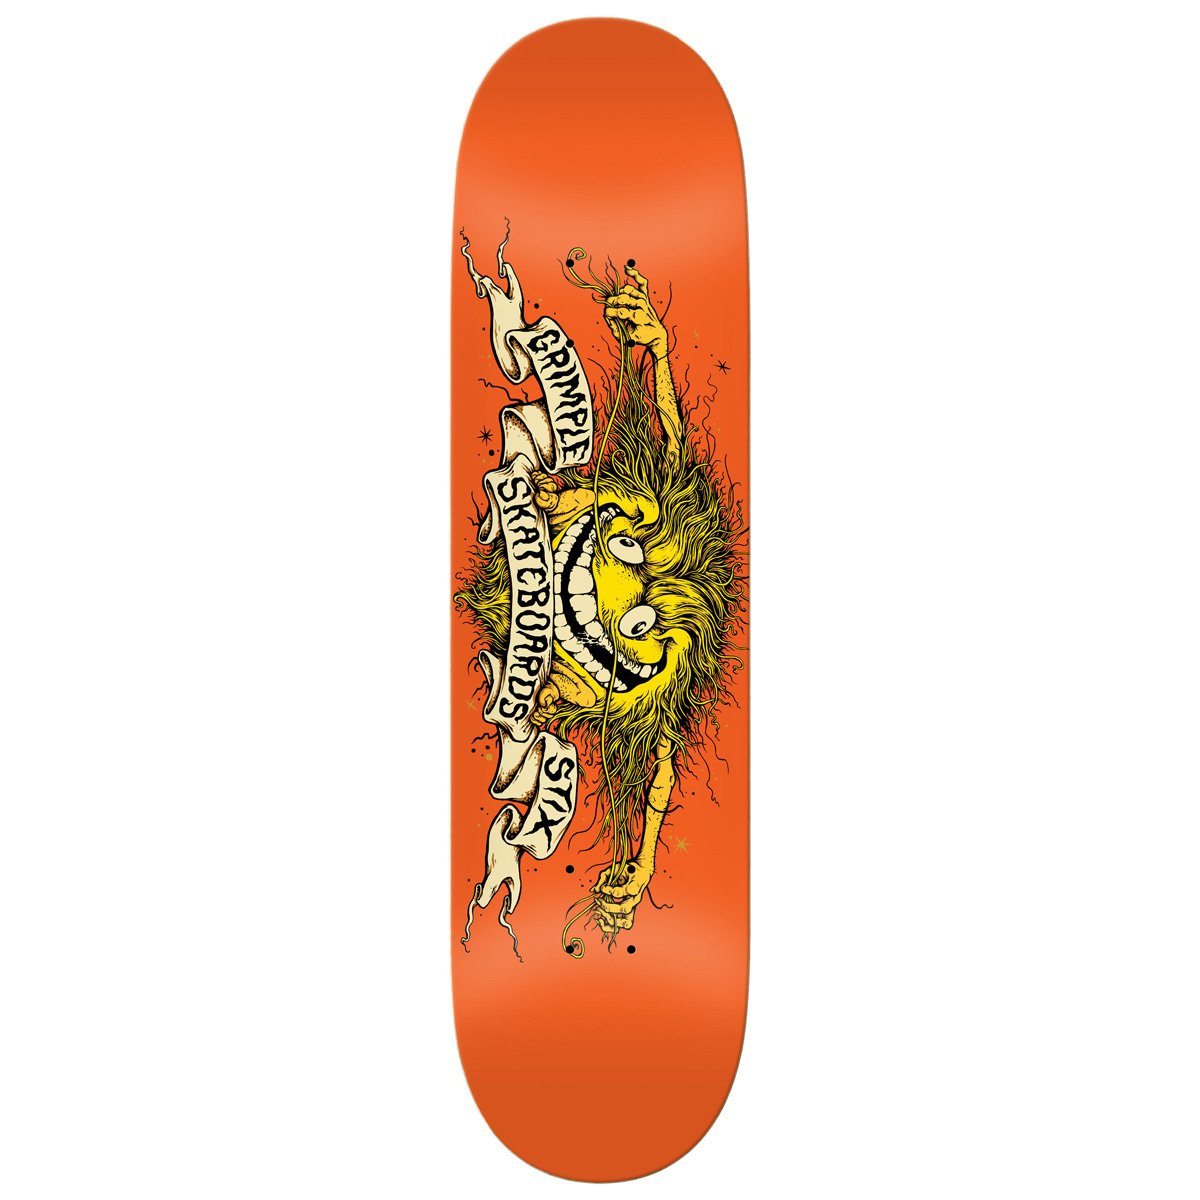 GRIMPLE STIX EAGLE DECK - 8.2